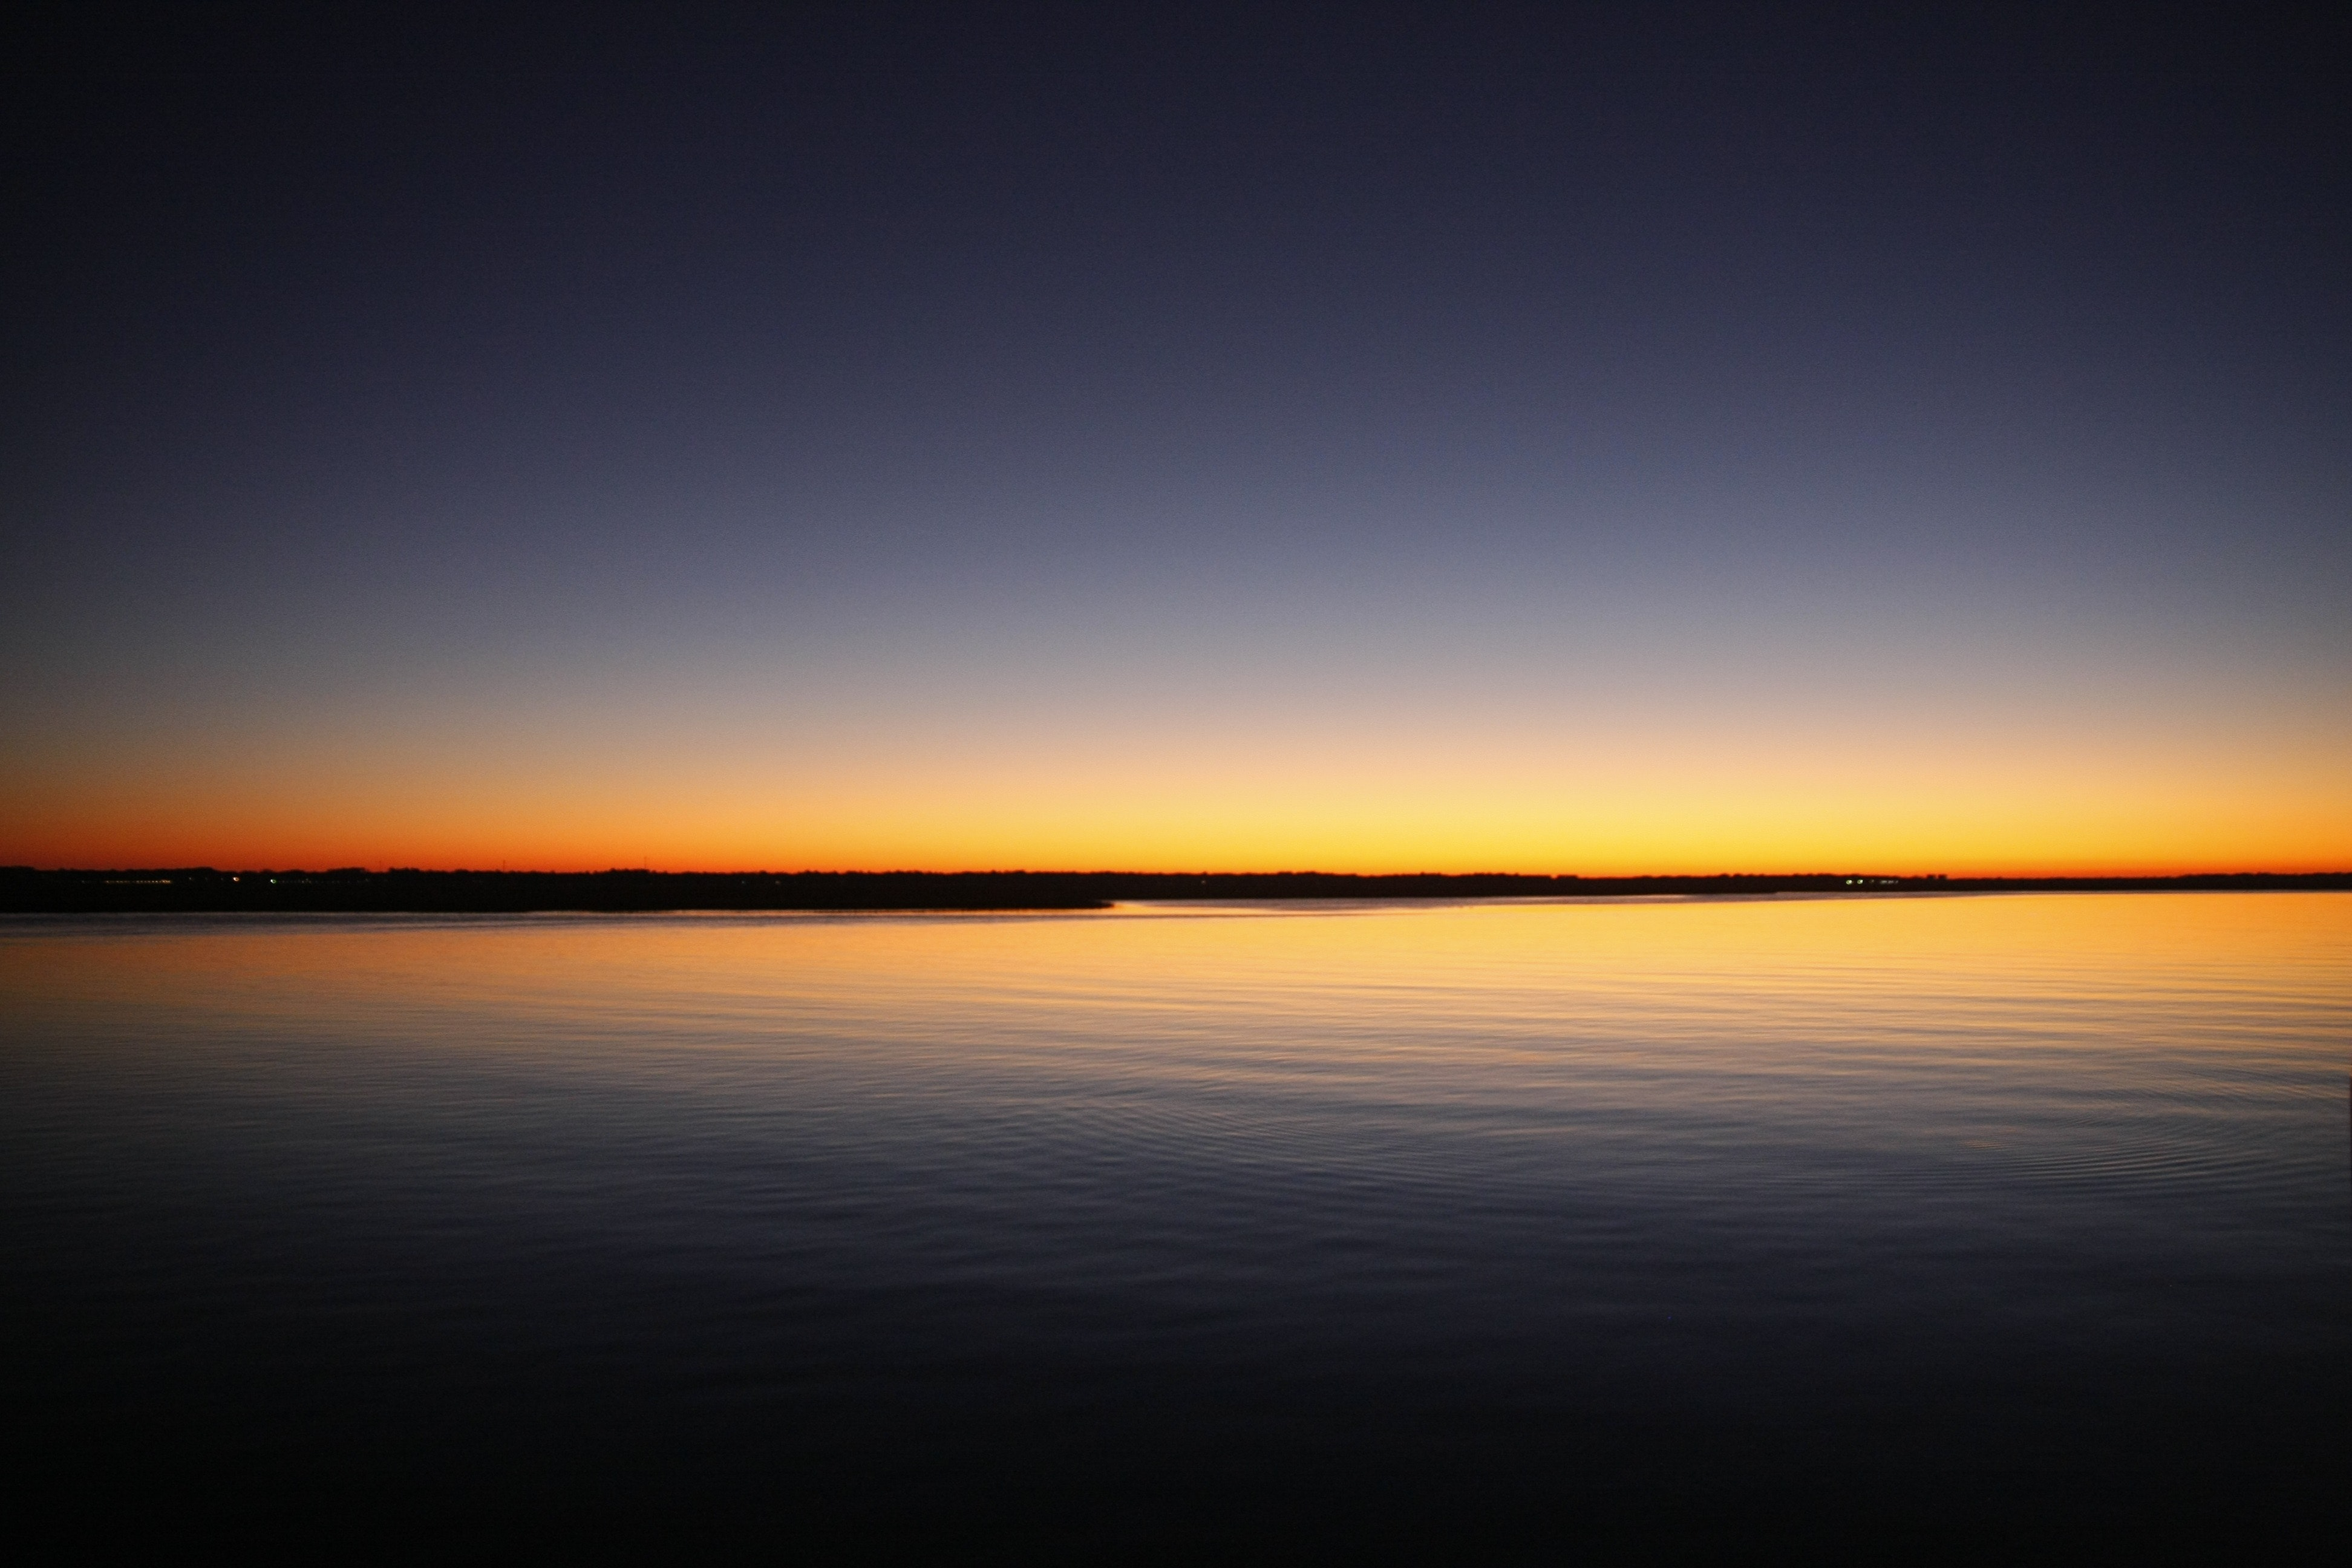 Silhouette of Calm Sea Under Blue and Orange Clear Sky ...